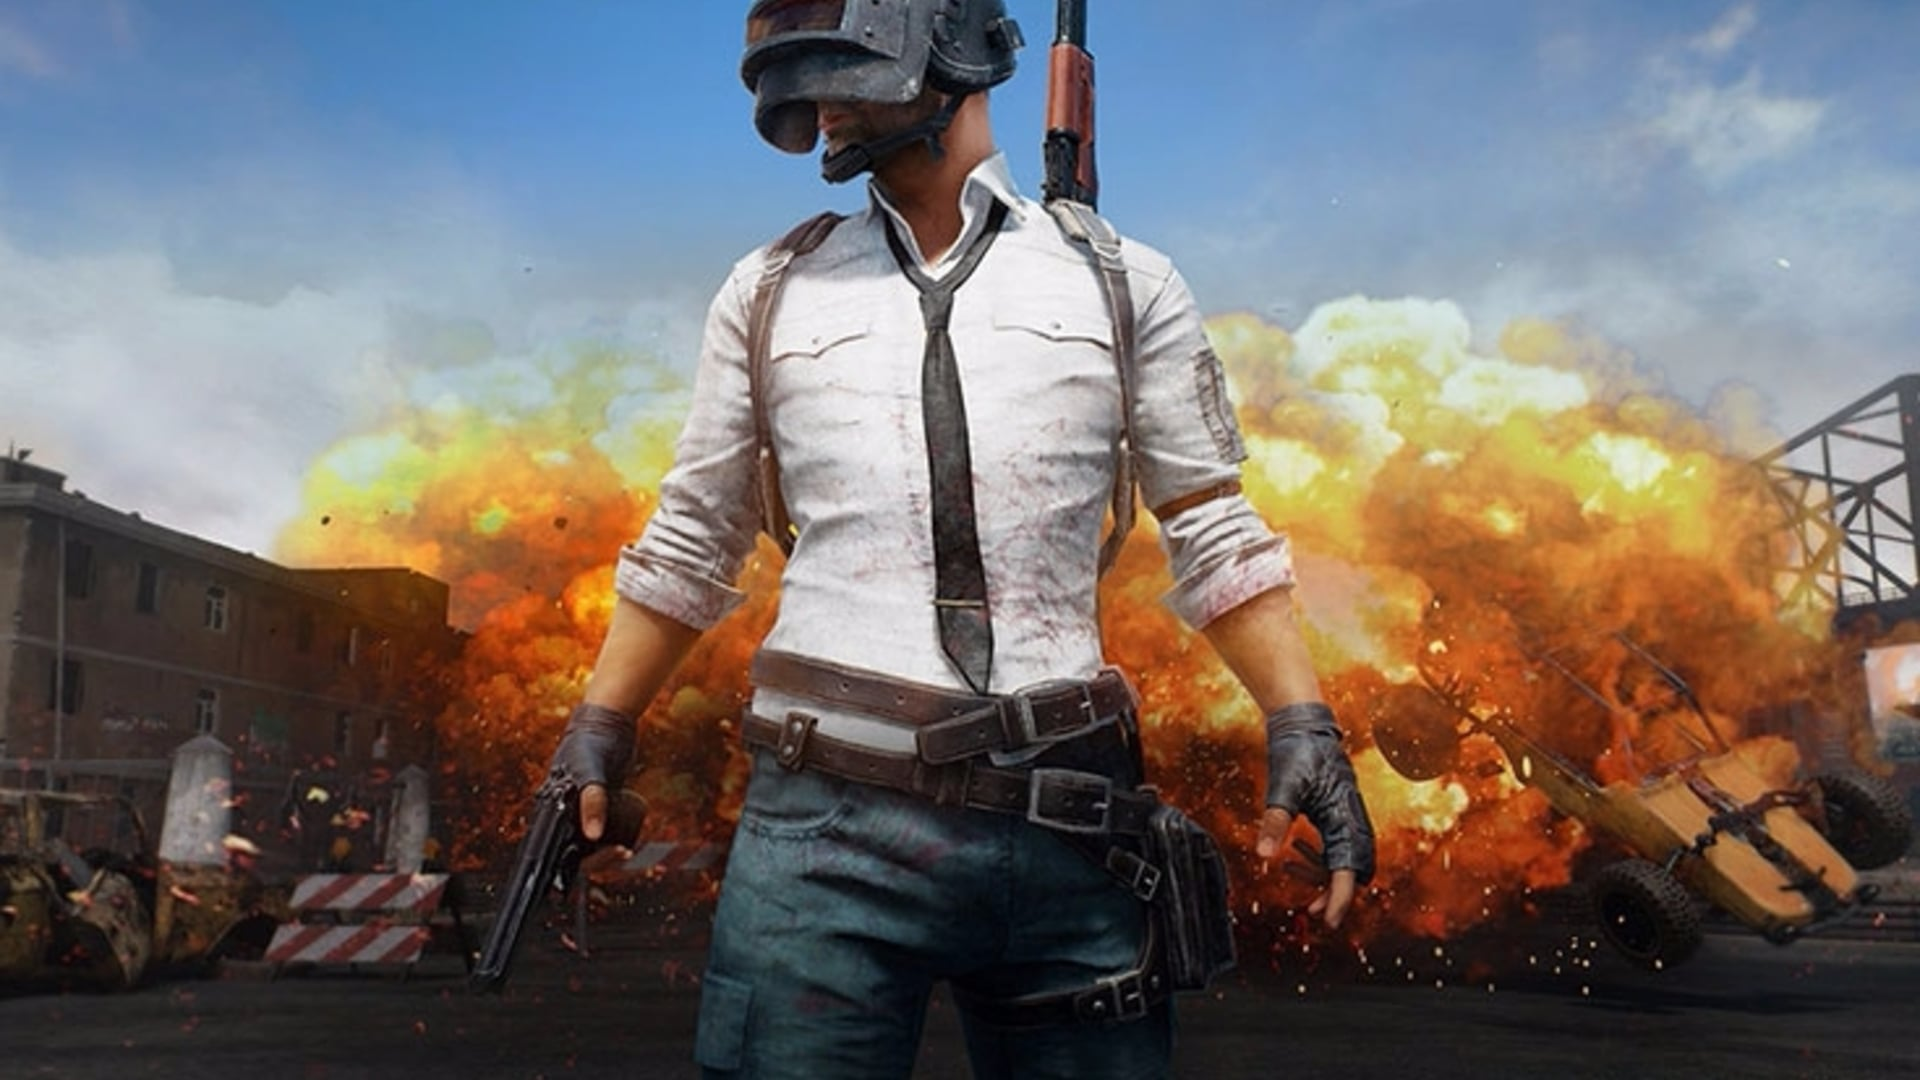 Tabletowo.pl PUBG and PES 2019 Completely free on Xbox One - Download at the time you can! Promotion of Microsoft Games